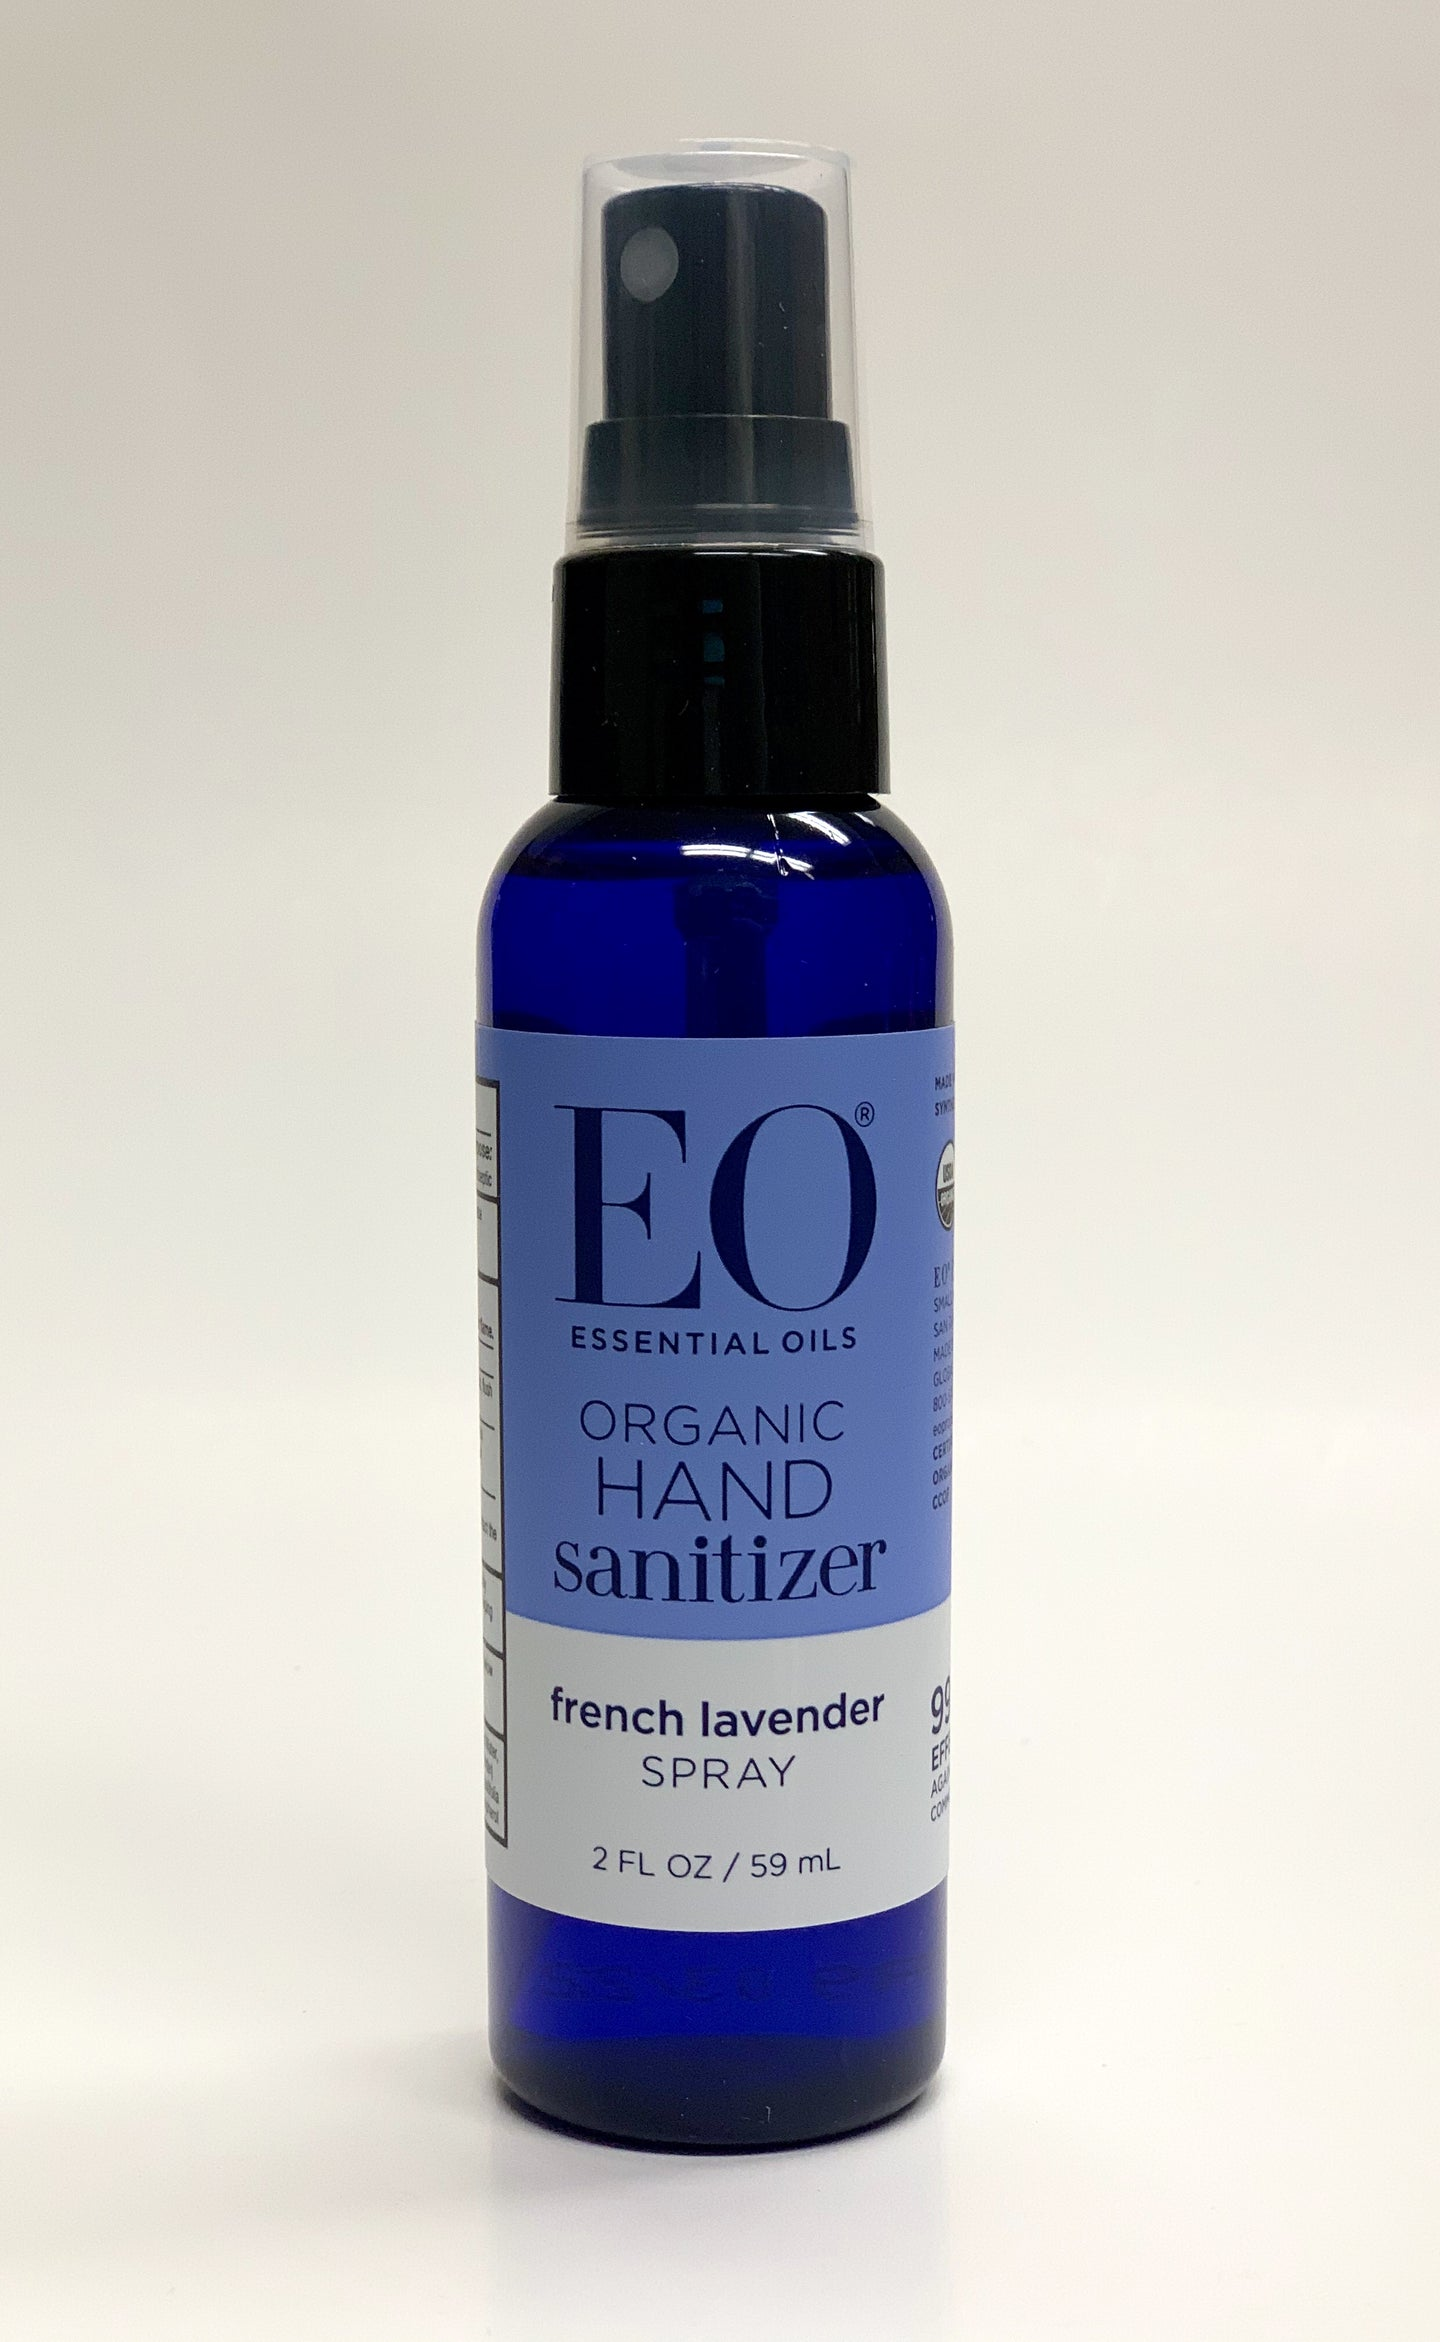 EO Organic Hand Sanitizer Fresh Lavender Spray 2 oz